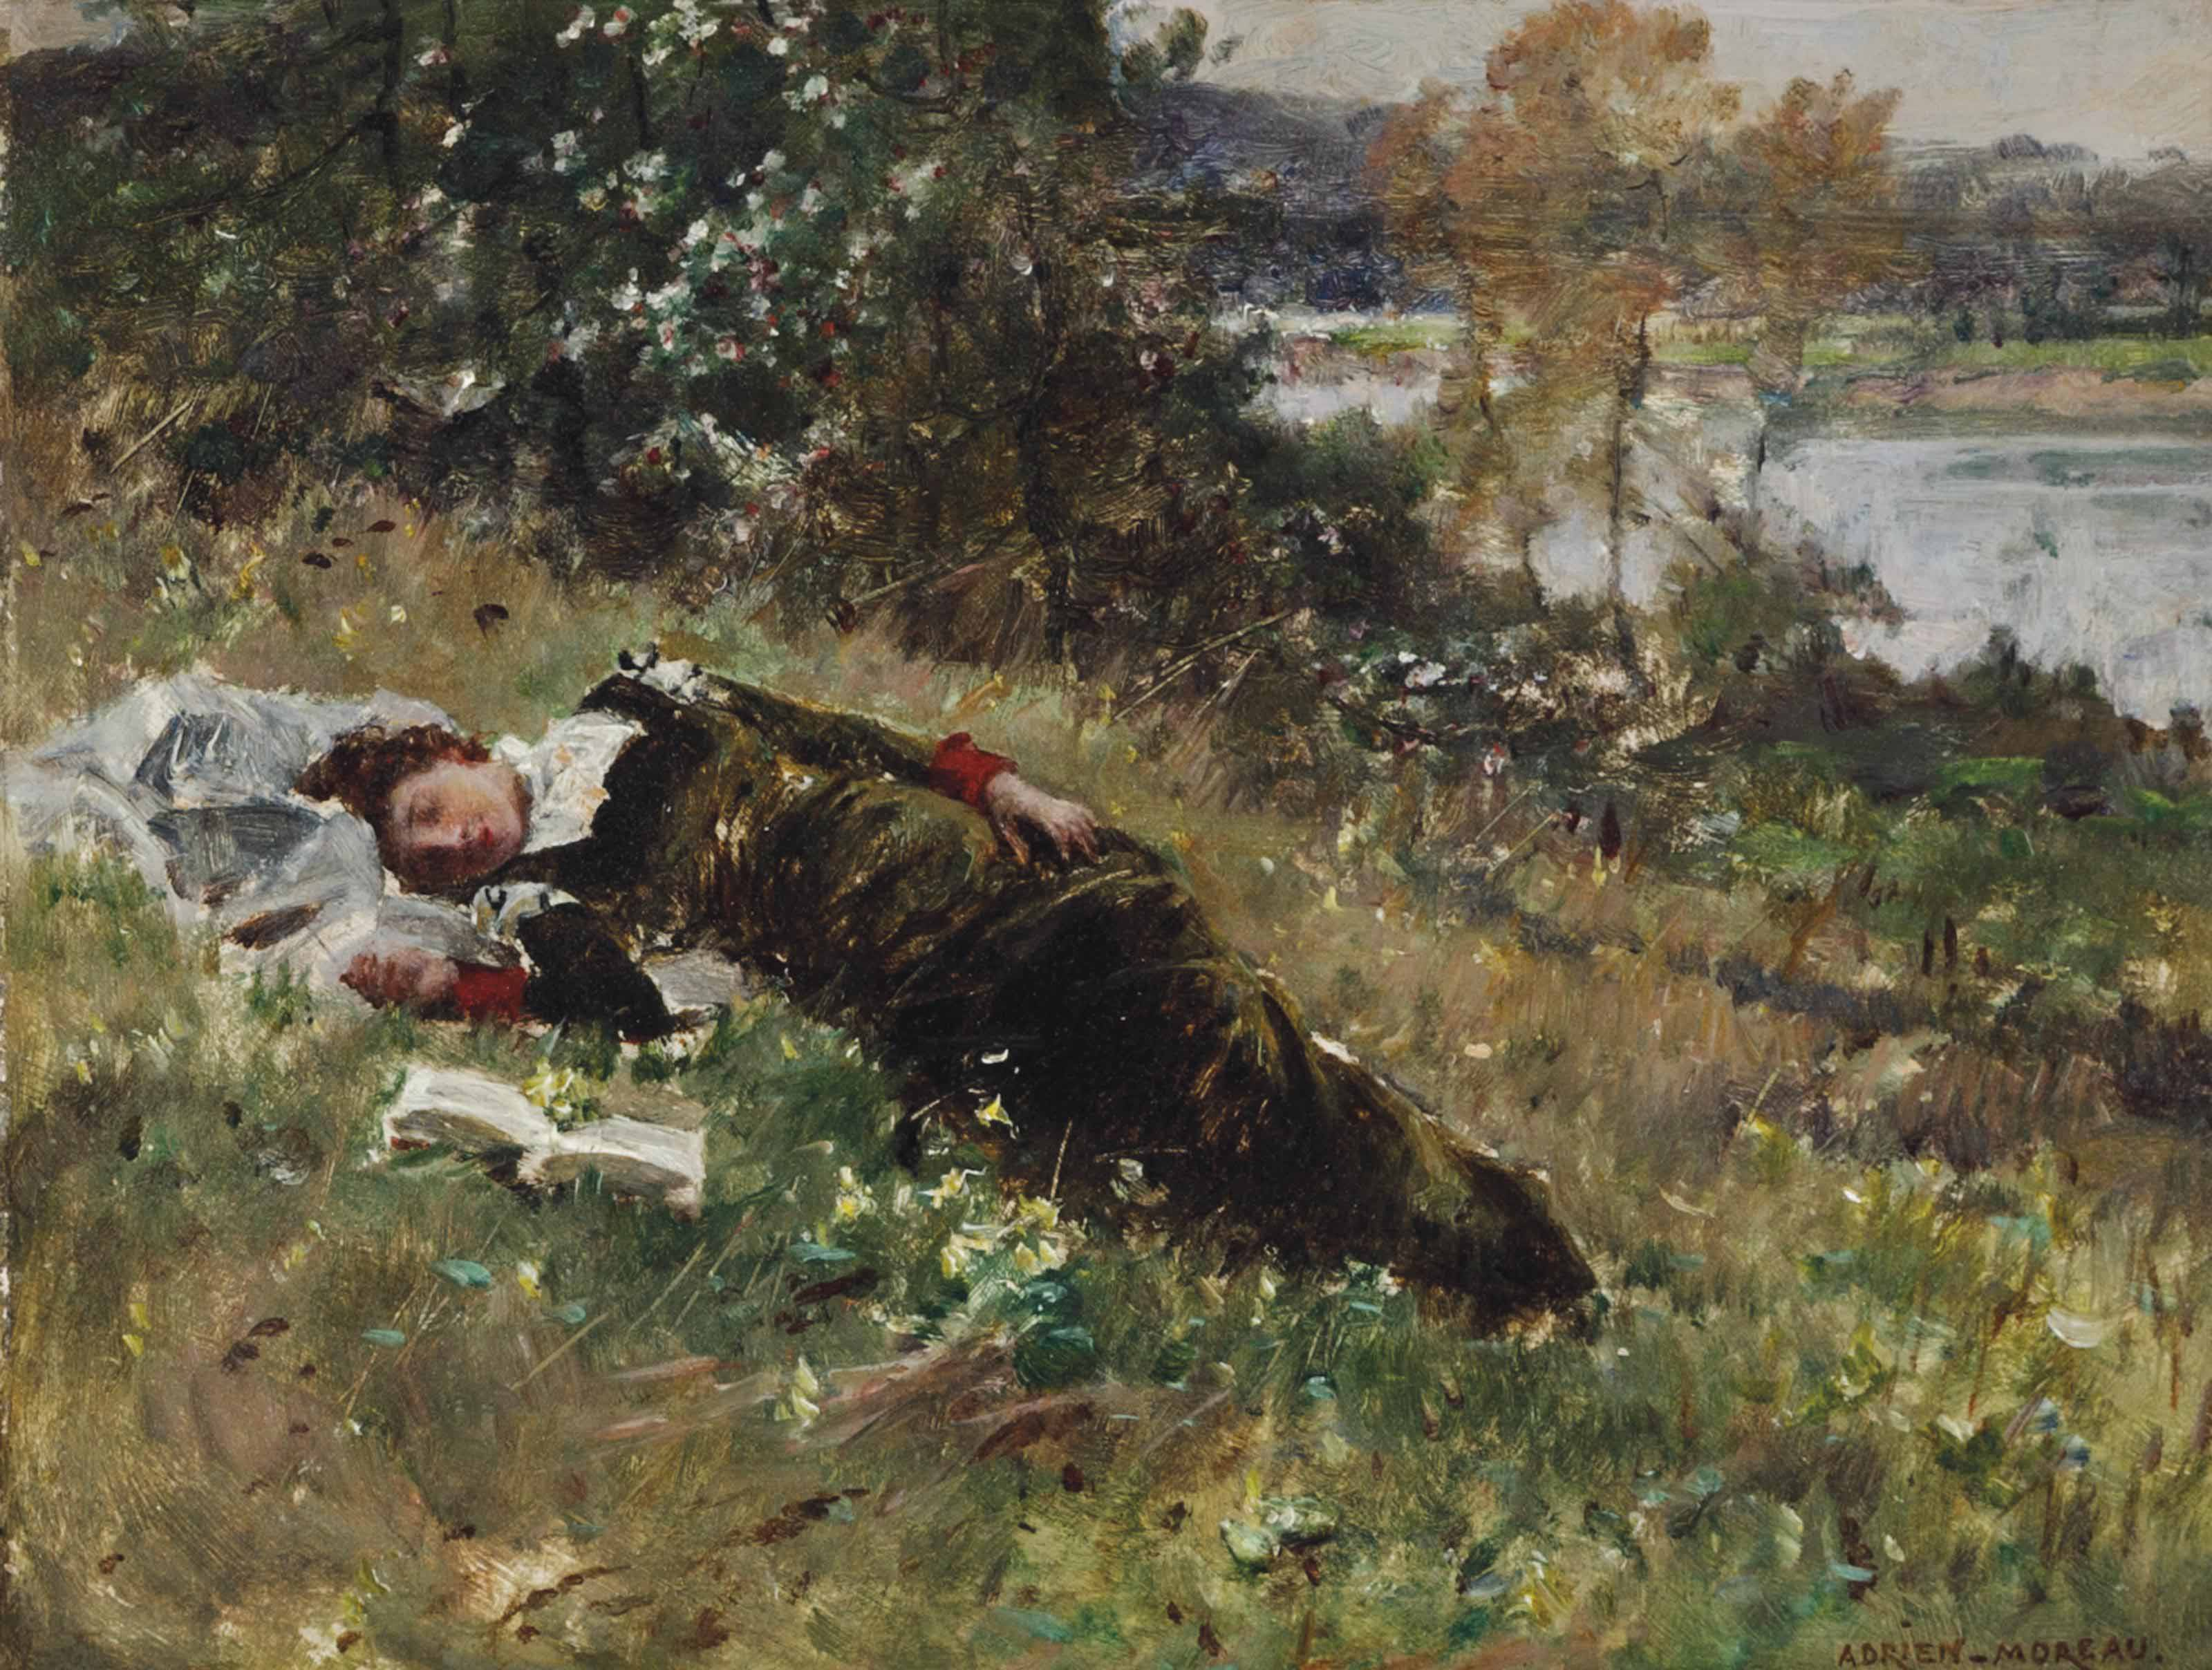 A Summer Afternoon by the River